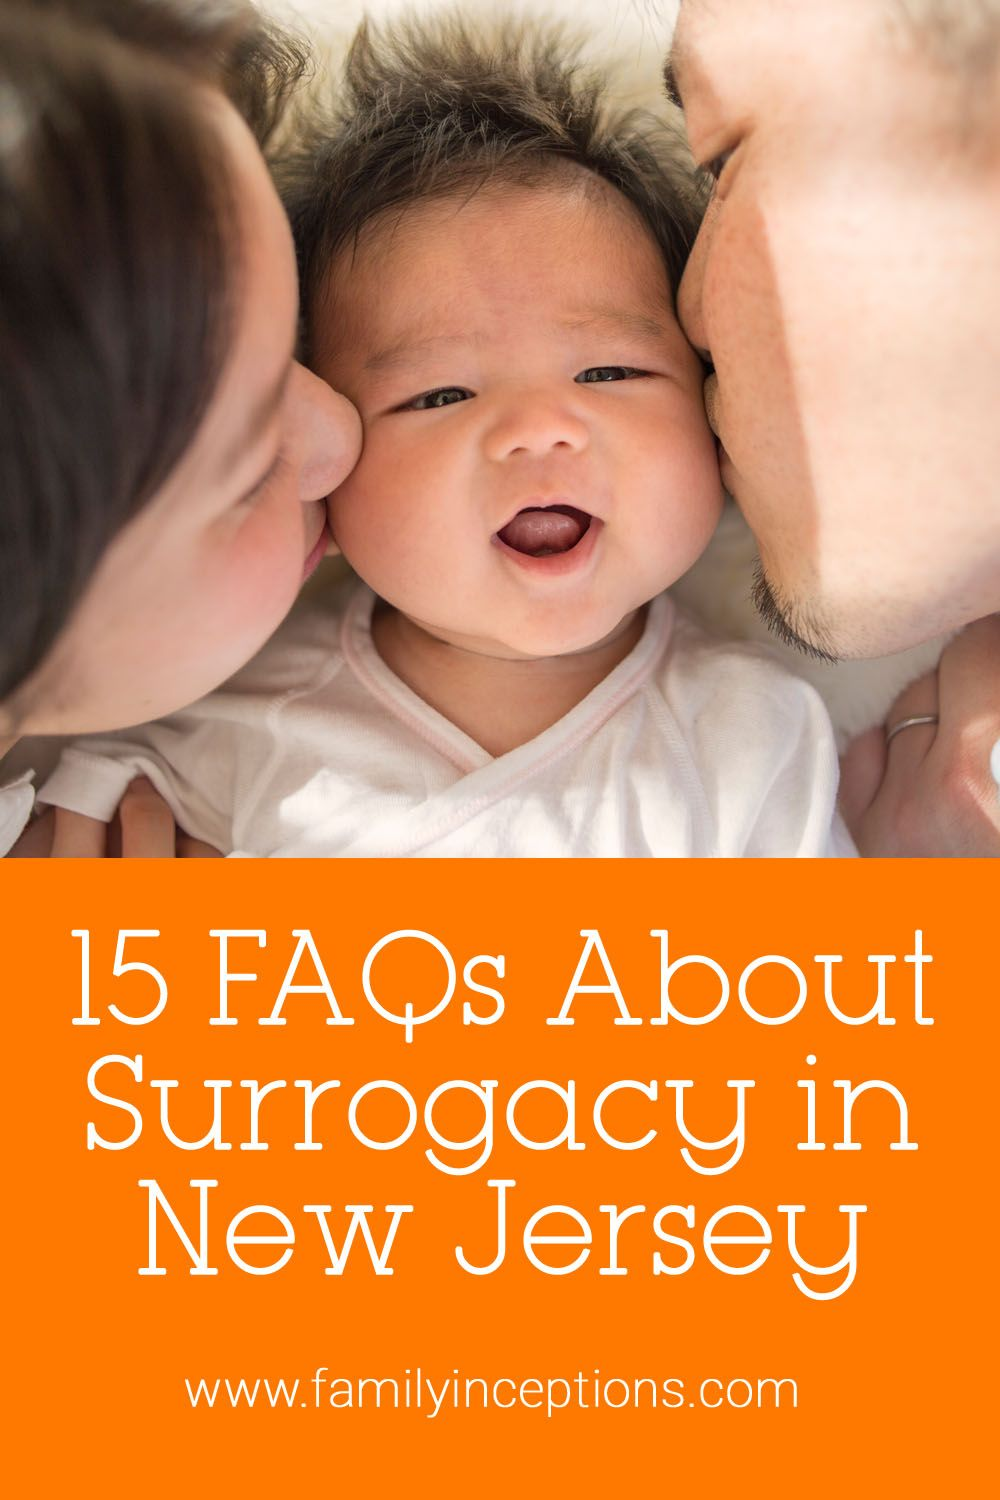 15 faqs about surrogacy in new jersey in 2020 surrogacy